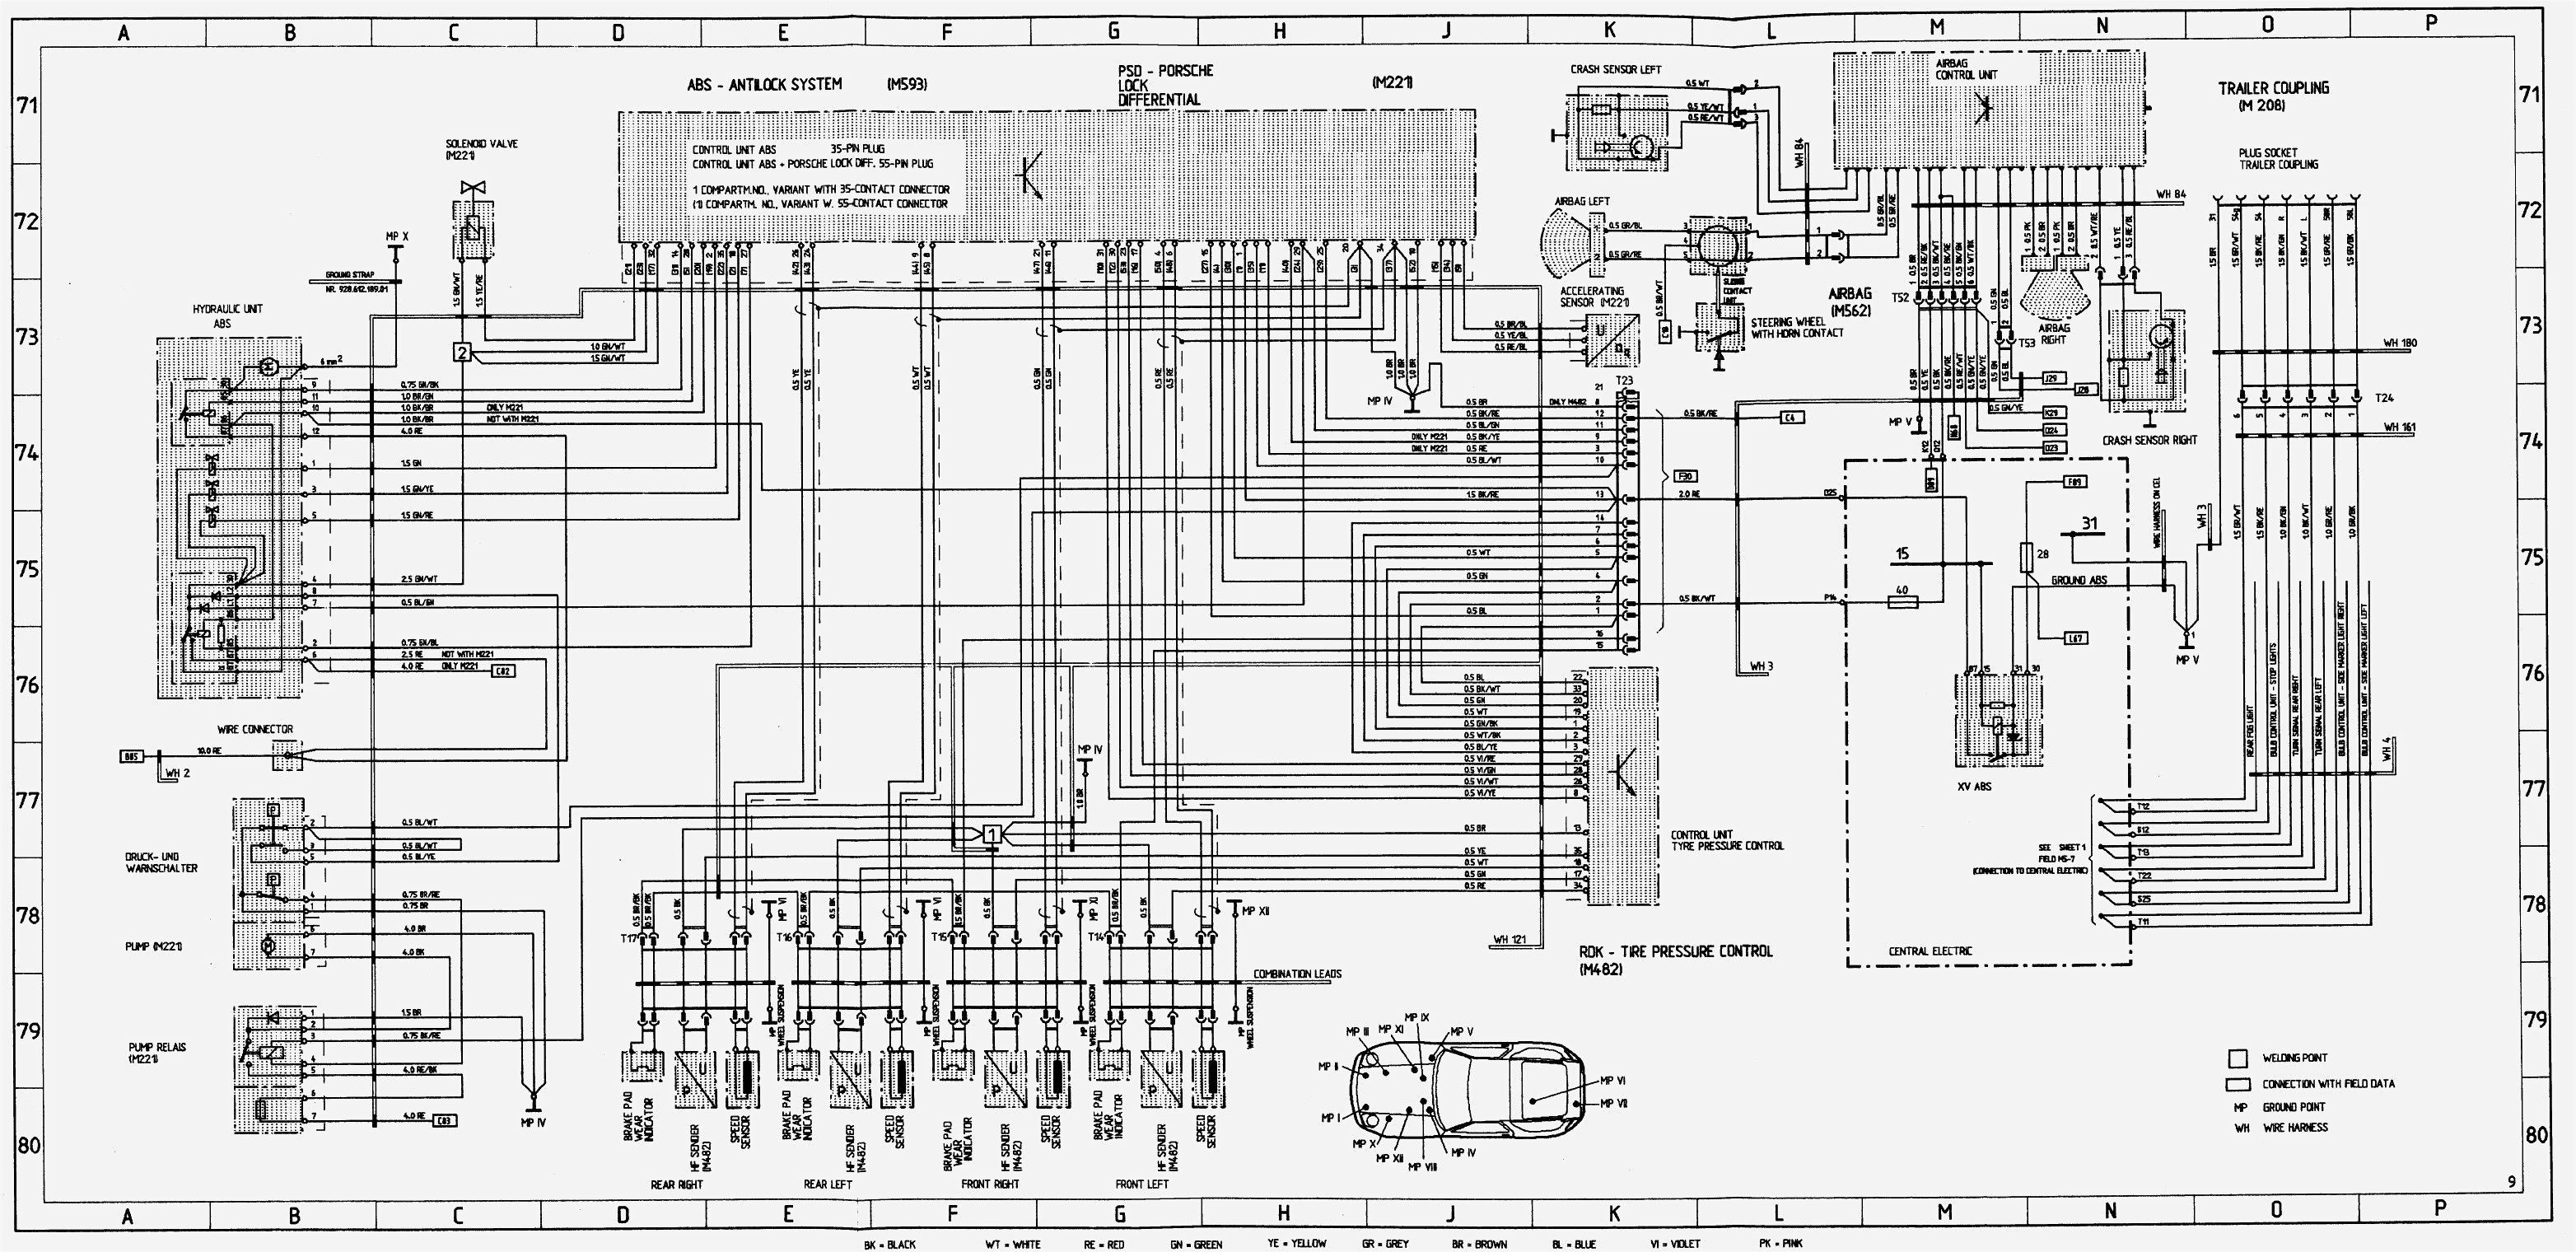 08 Hyundai Accent Wiring Diagram Schematic In 2020 Electrical Wiring Diagram Bmw E46 Bmw